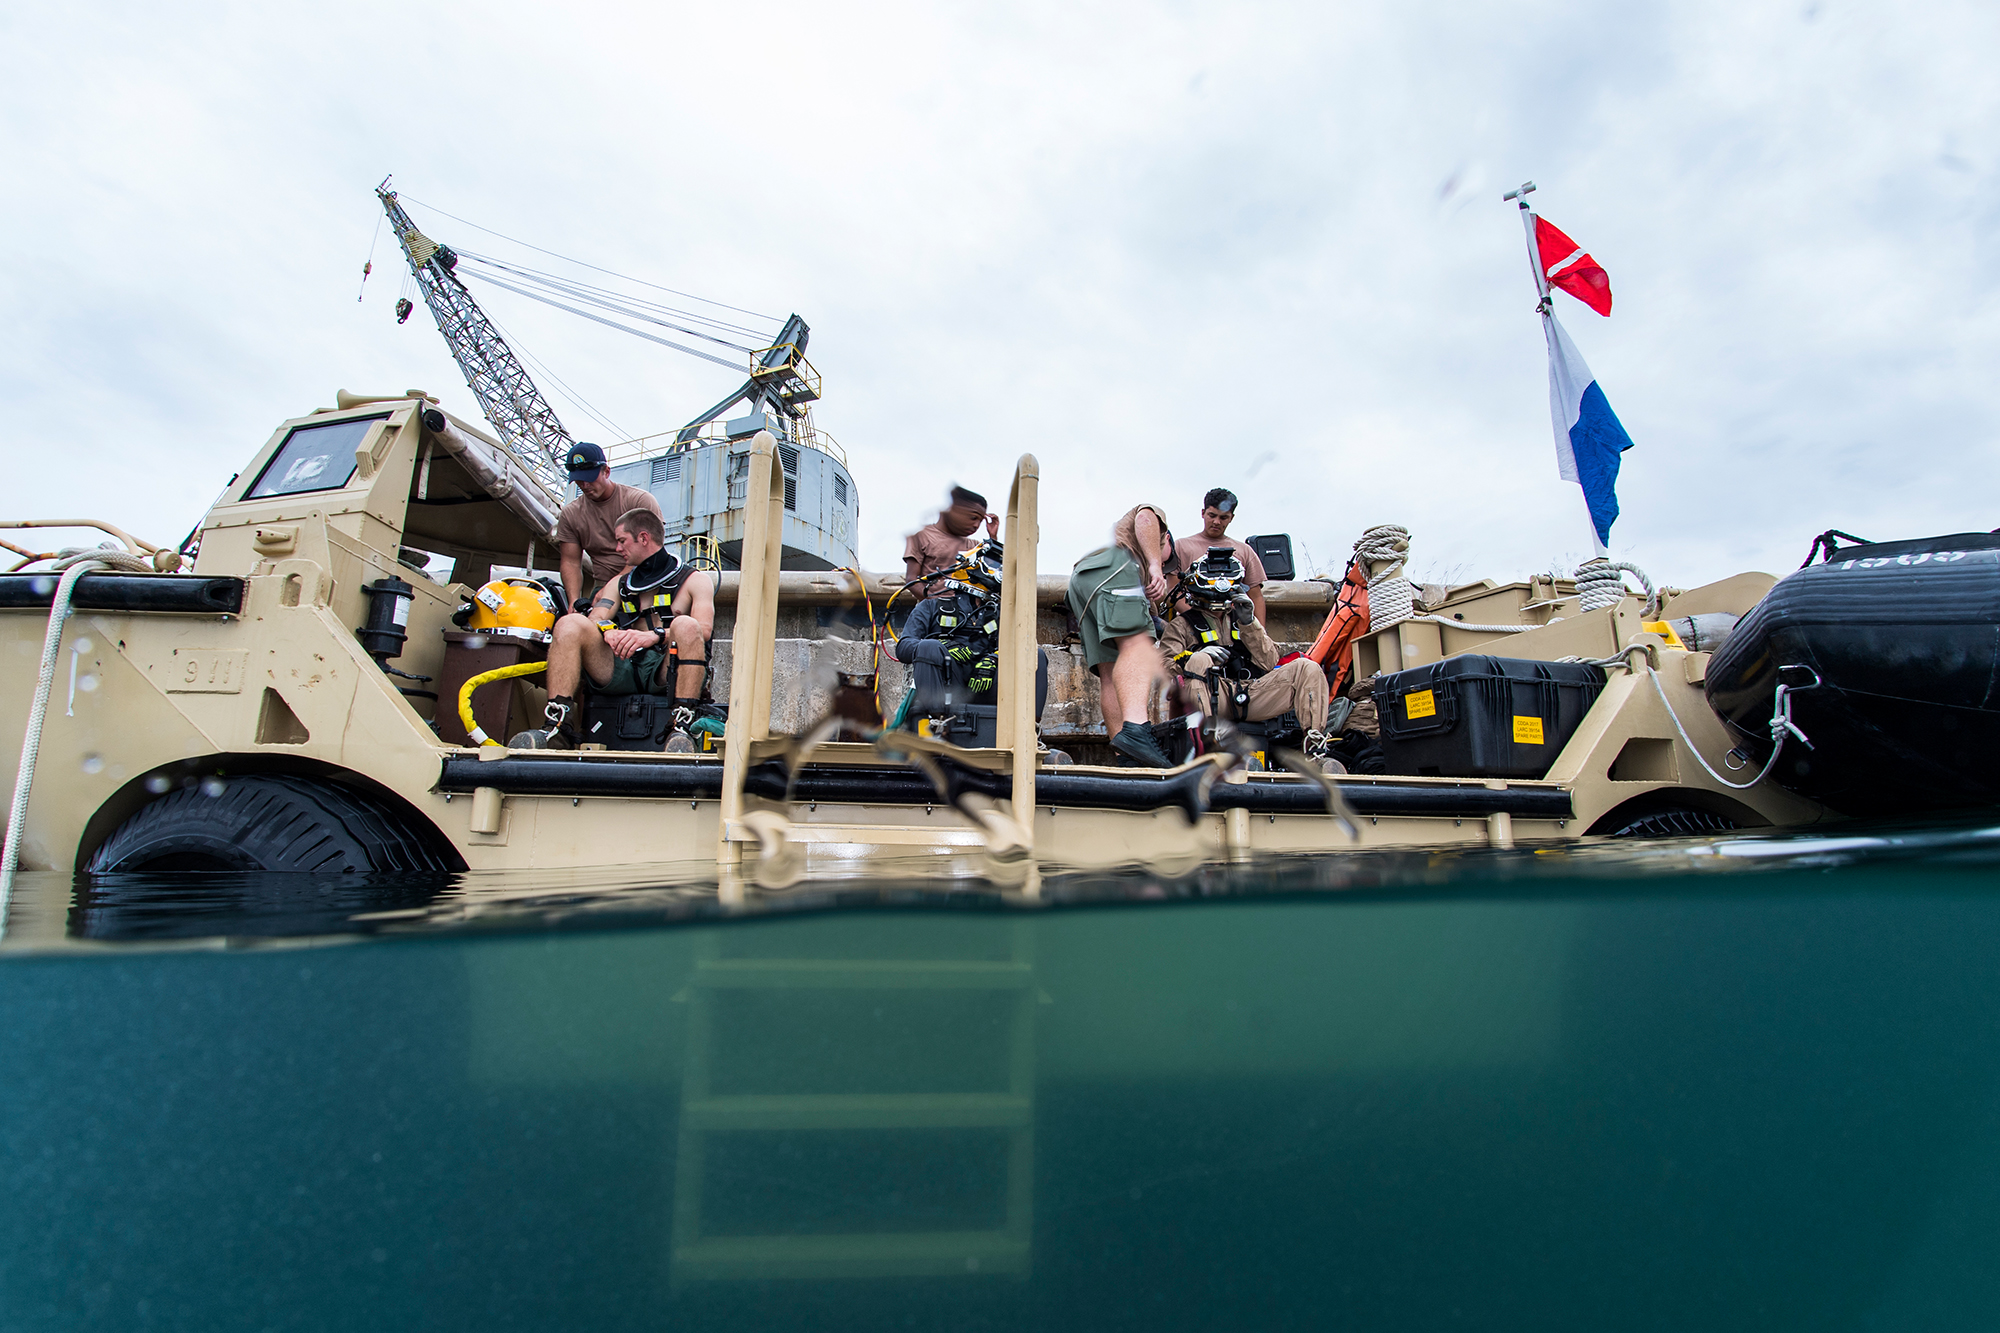 U.S. Navy Seabees, assigned to Underwater Construction Team (UCT) 2, prepare for underwater welding operations at Naval Base Guam, Oct. 19, 2017. UCT-2 provides responsive inshore and underwater construction capabilities under the guidance of Commander, Task Force 75. (Specialist 1st Class Arthurgwain L. Marquez/Navy)